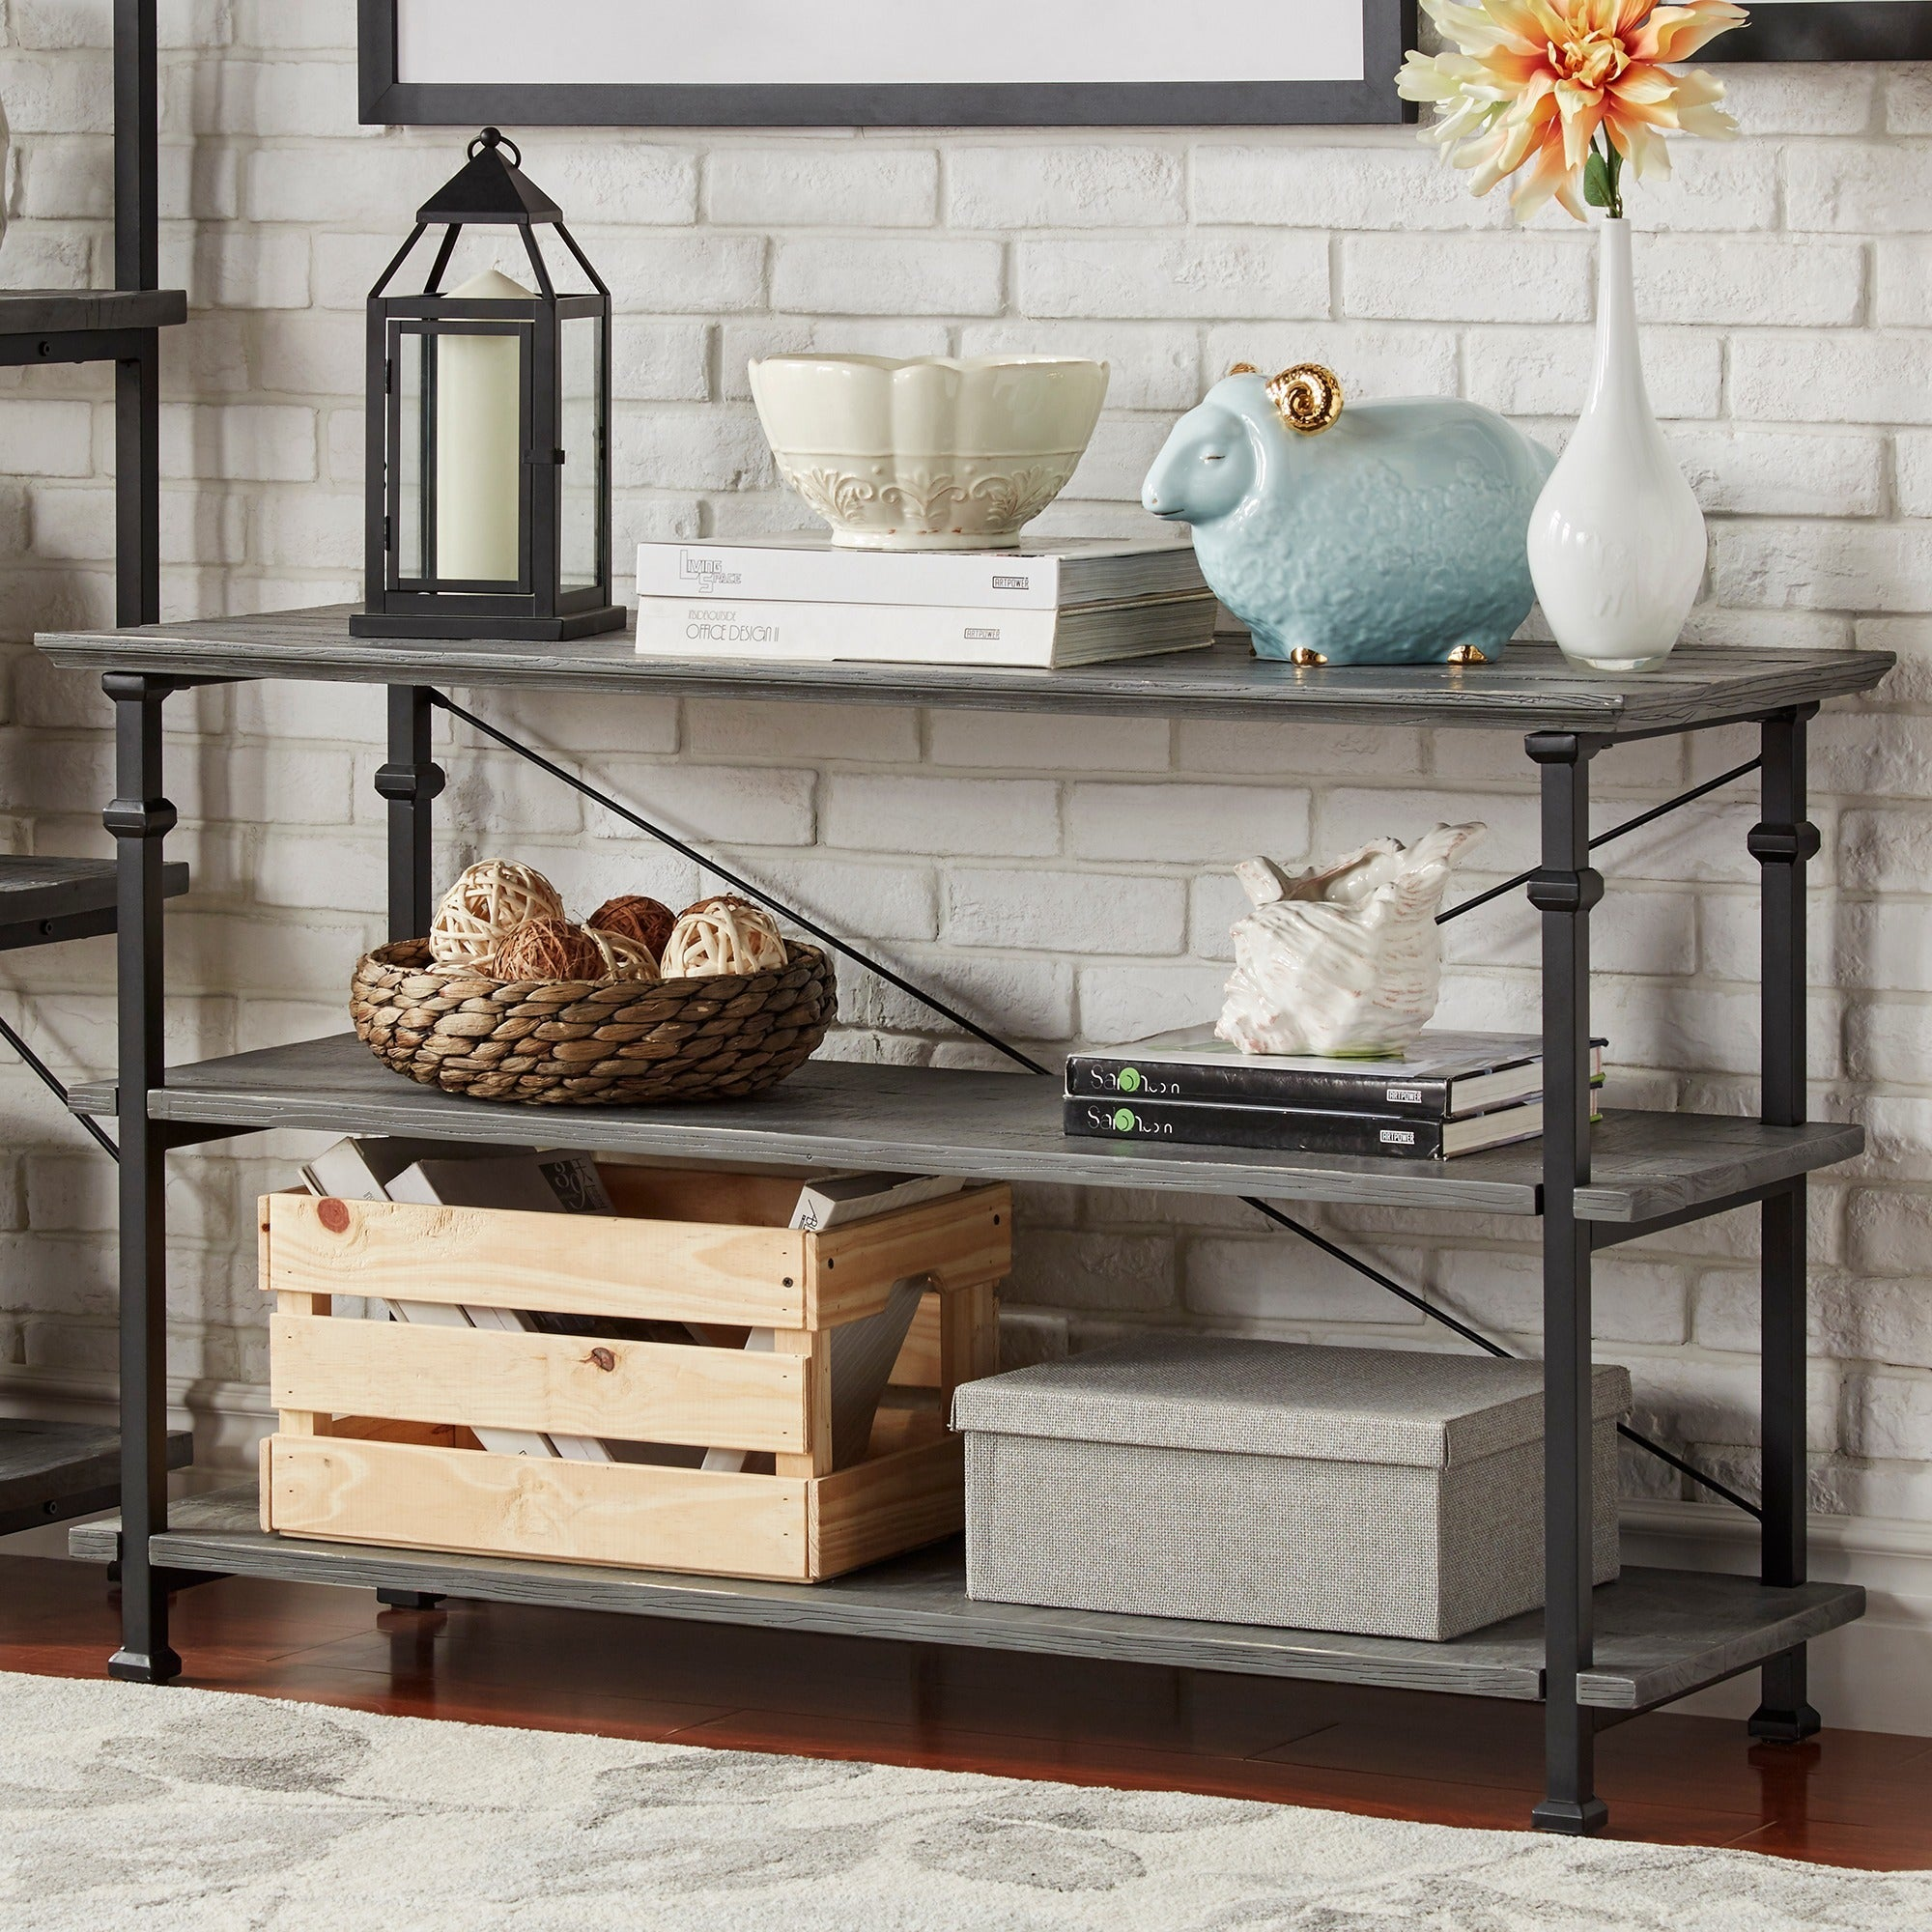 Myra Vintage Industrial TV Stand by iNSPIRE Q Classic - Free Shipping Today  - Overstock.com - 14288173